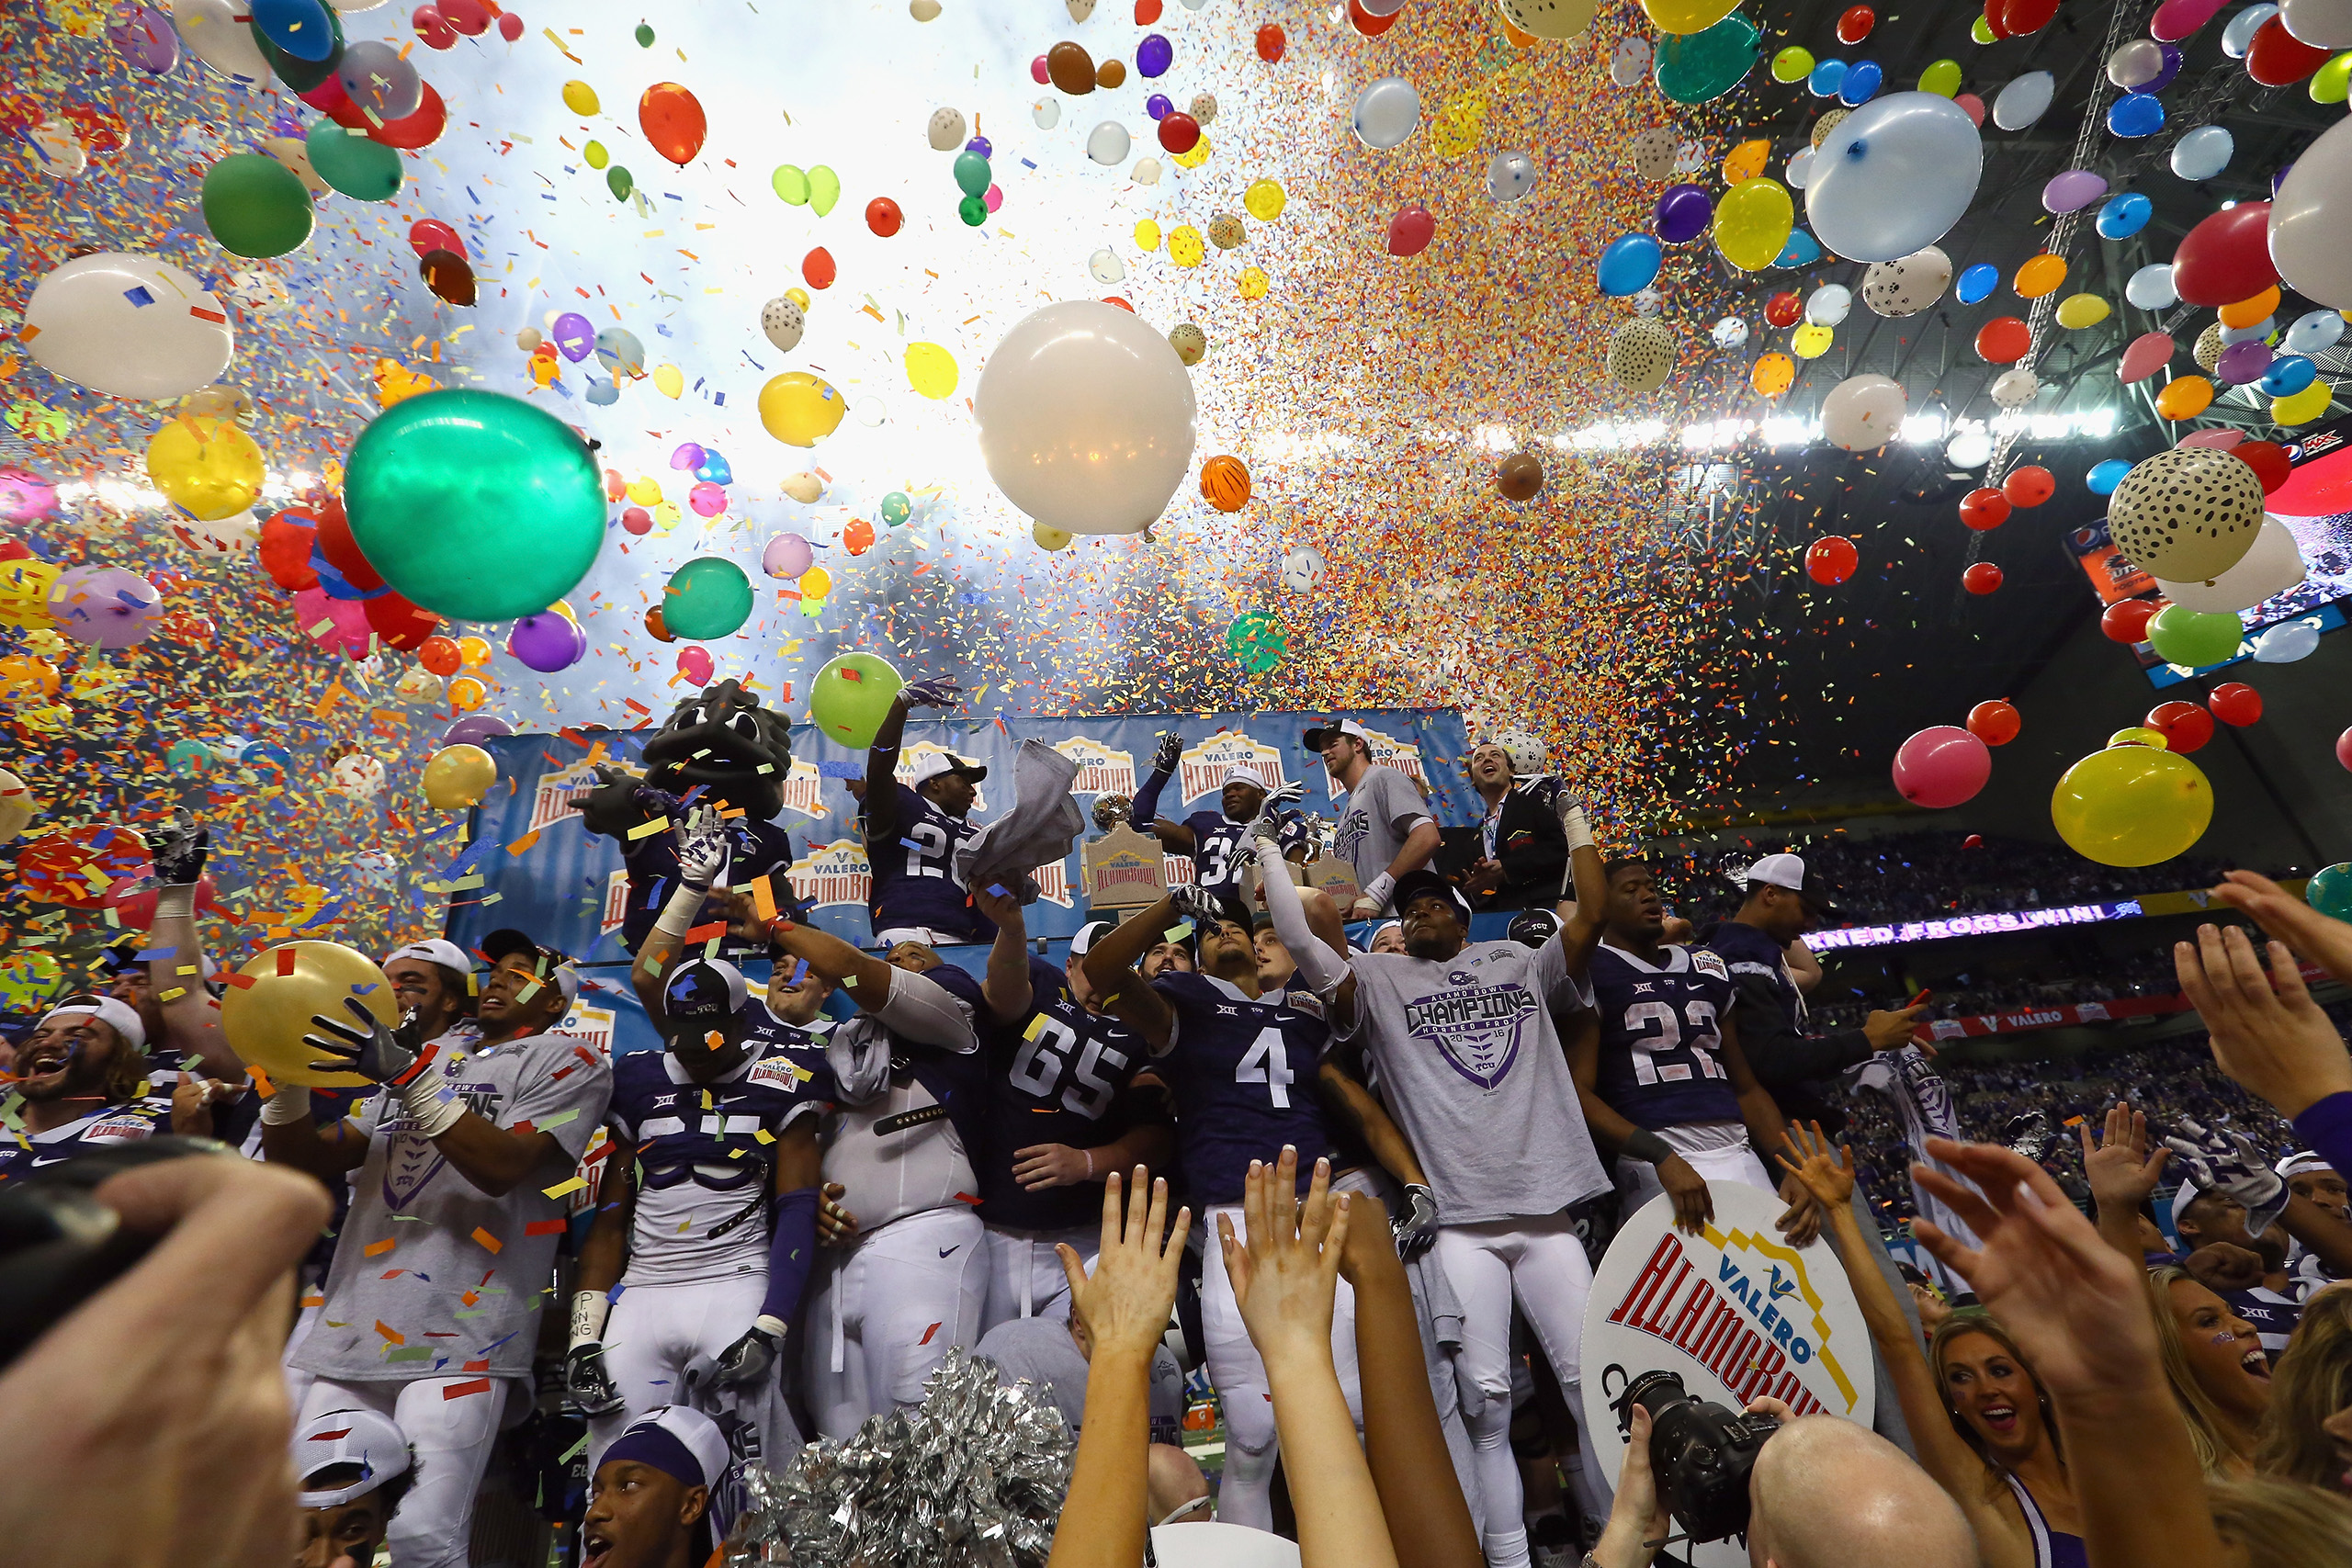 The TCU Horned Frogs celebrate after winning the Valero Alamo Bowl in three overtimes against the Oregon Ducks at Alamodome on Jan. 2, 2016 in San Antonio.